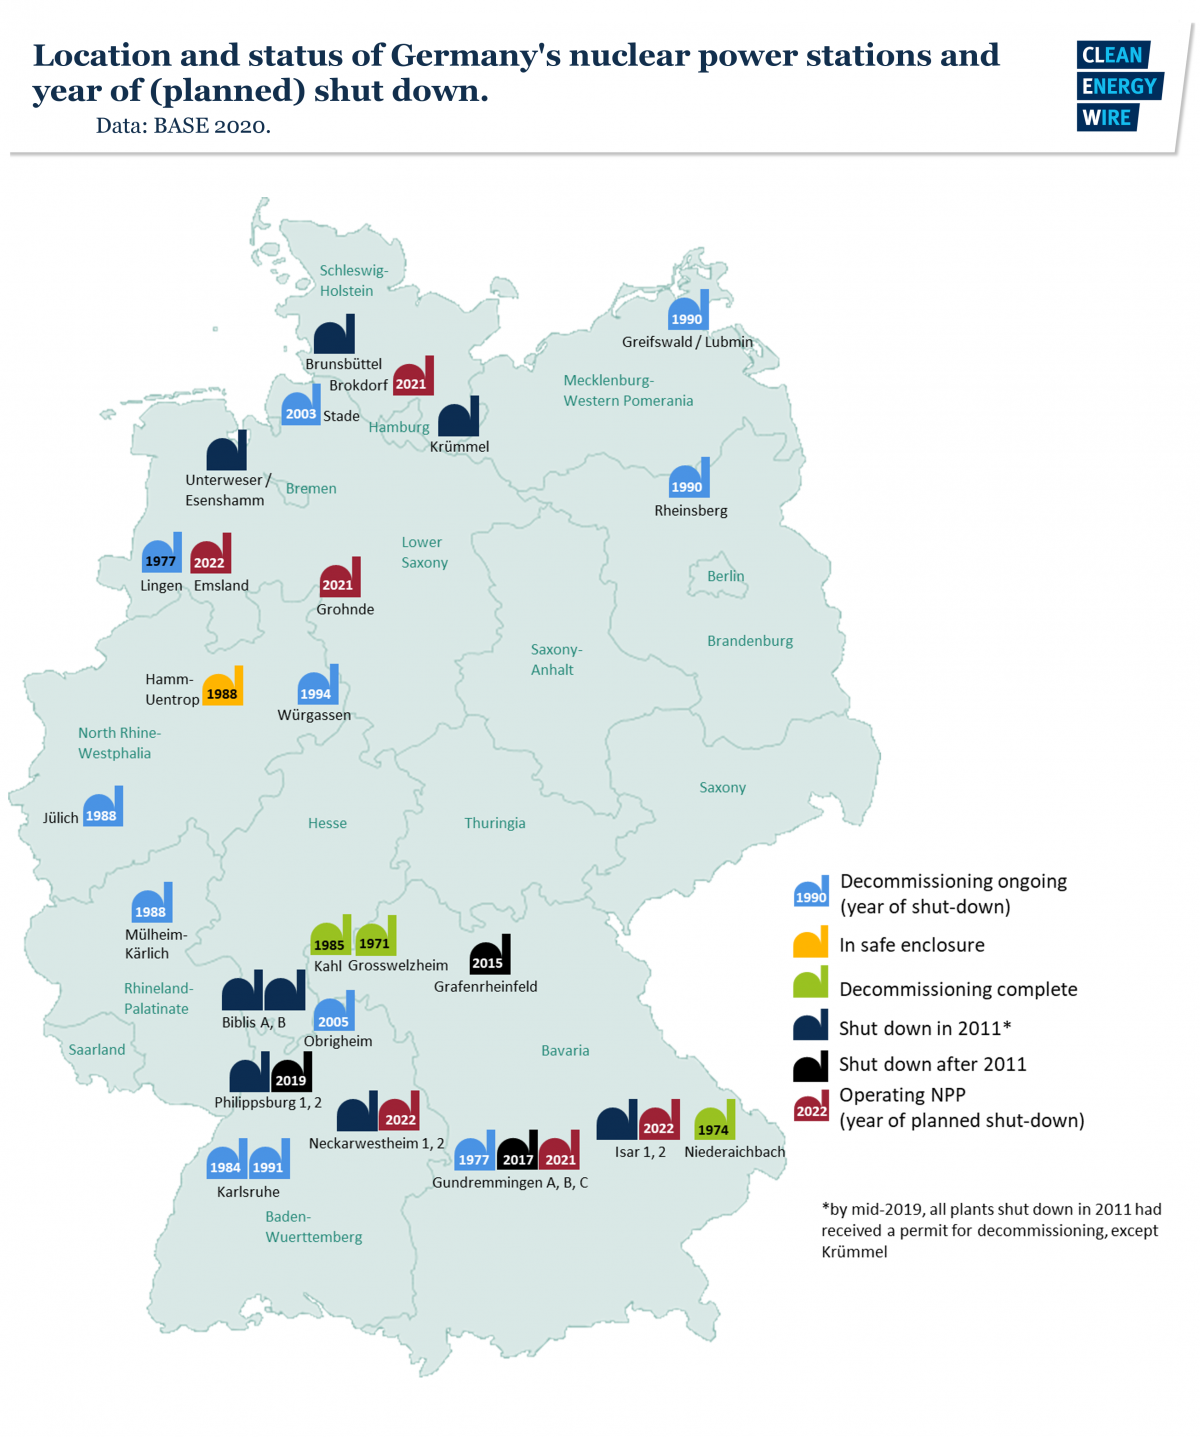 Image shows map of German nuclear power stations and planned shut down date. Graph: CLEW 2020.